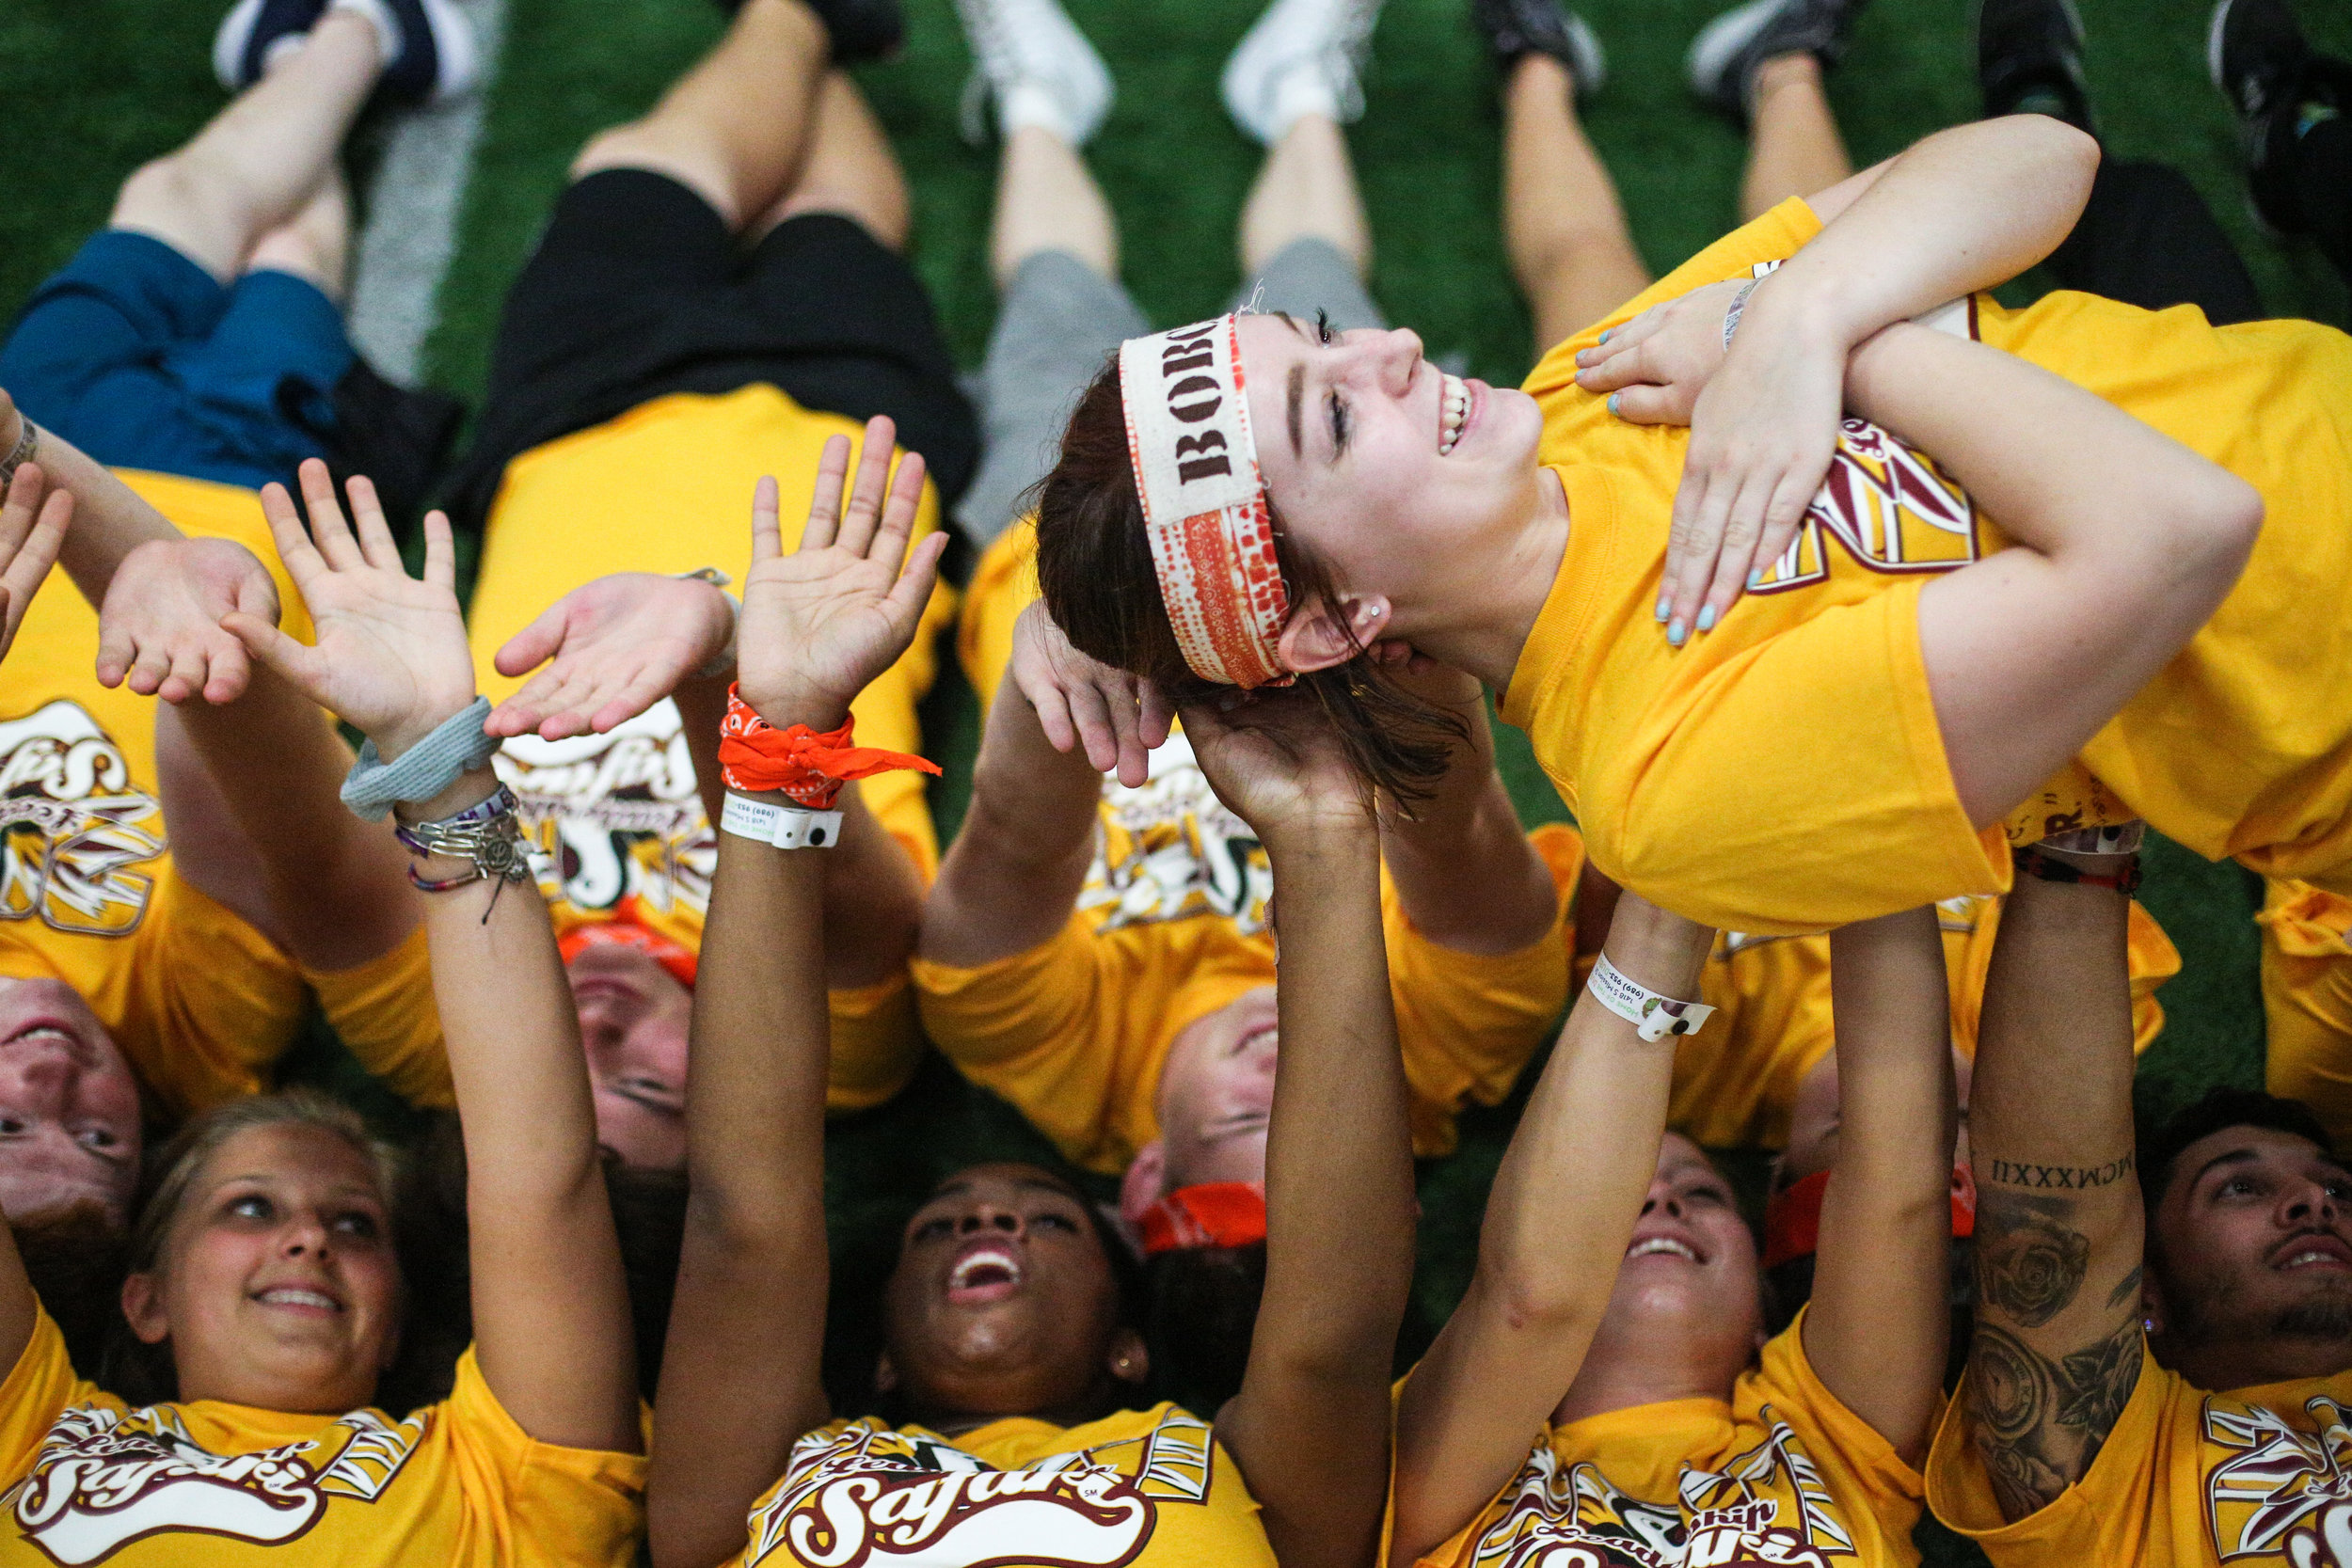 Toledo, Ohio freshman Cassie Scouten is passed along by members of the Bobcat and Bearded Dragon teams during a team building exercise at Central Michigan University's Leadership Safari on Aug. 21, 2017 in the Indoor Athletic Complex.